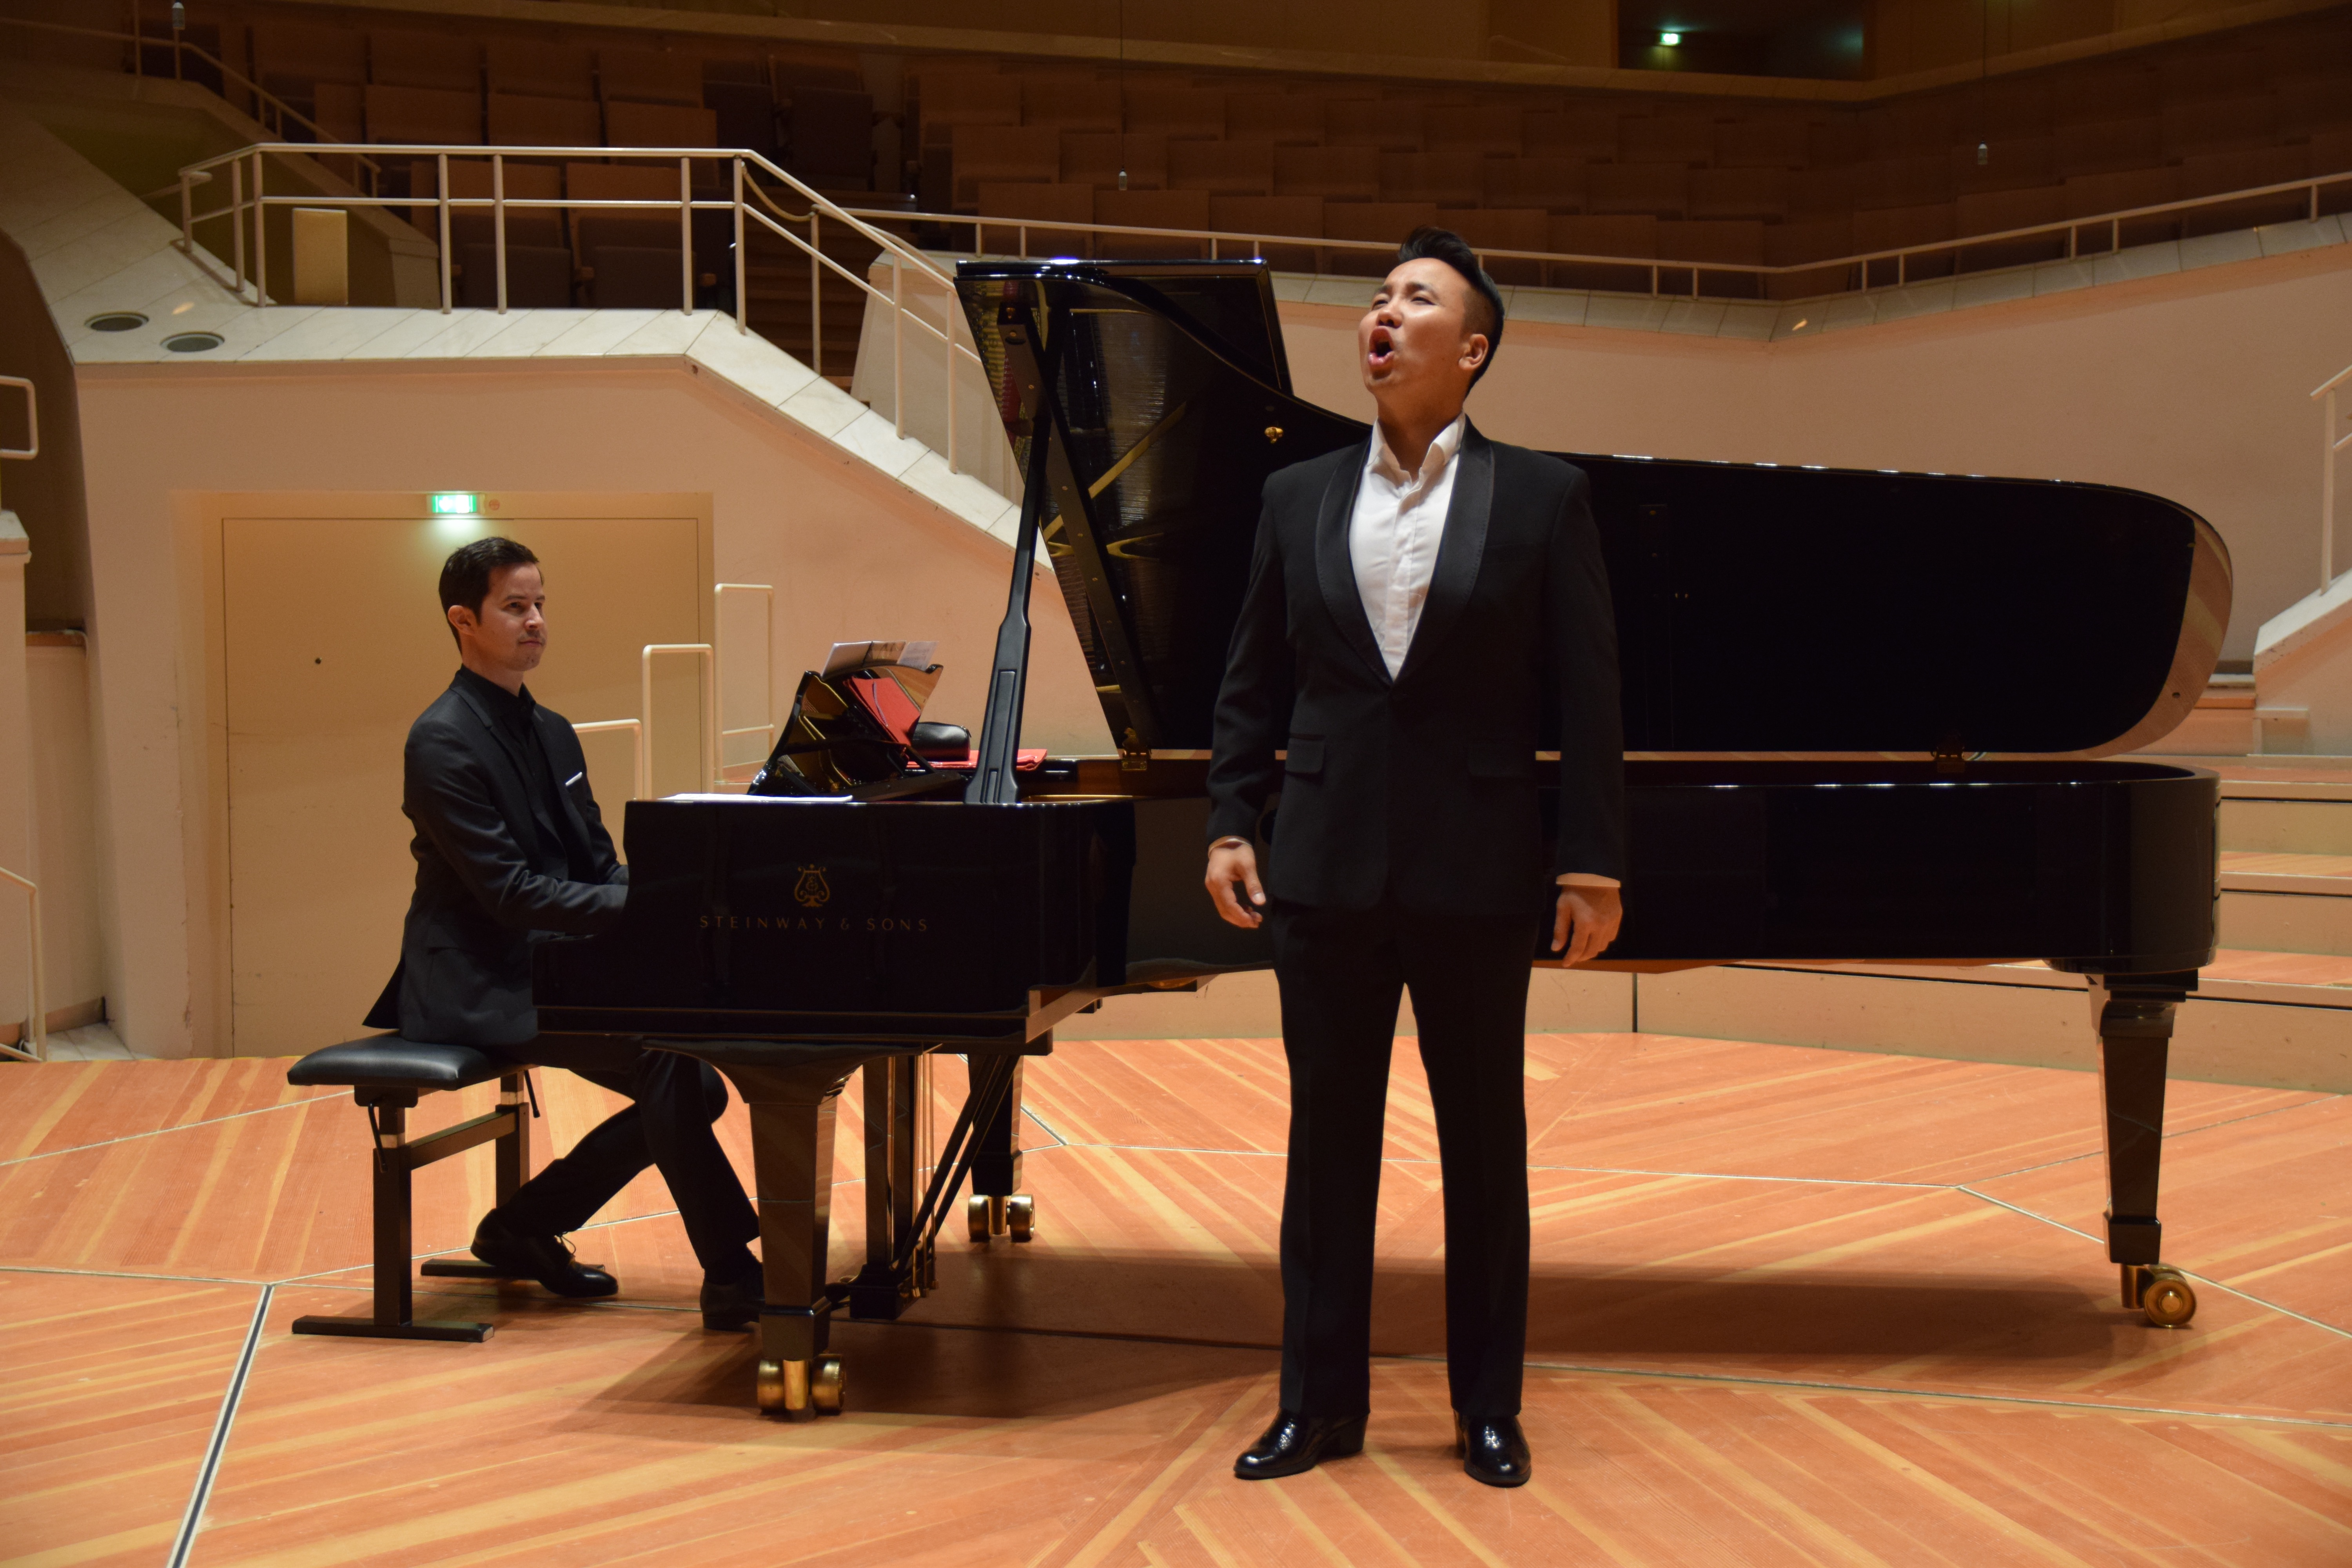 berliner music competition 55